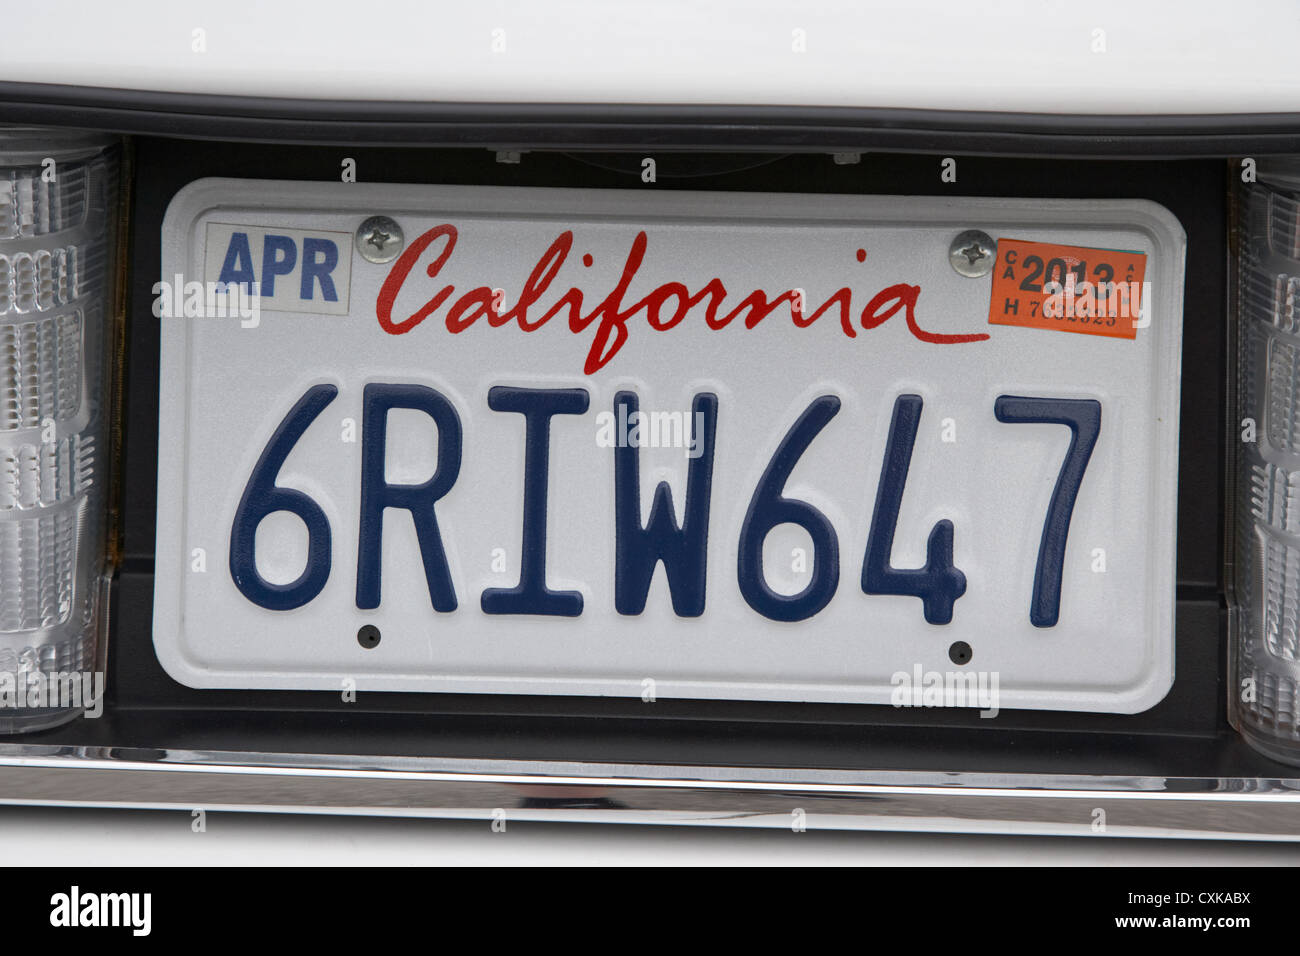 Licence Plate Stock Photos Licence Plate Stock Images Alamy